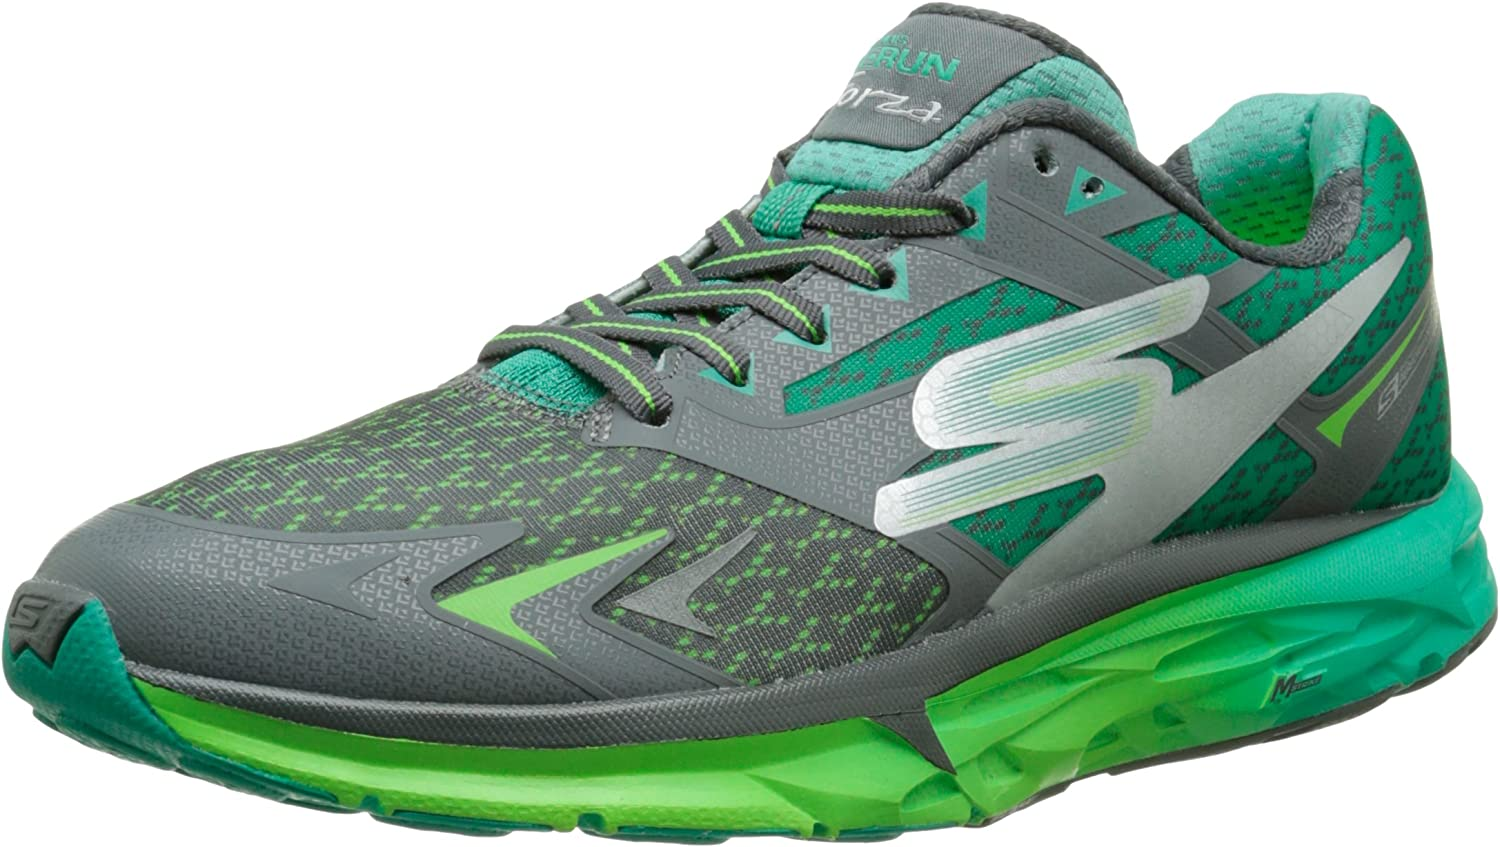 Skechers GO Run Forza - Zapatillas de Running Hombre: Amazon.es: Zapatos y complementos